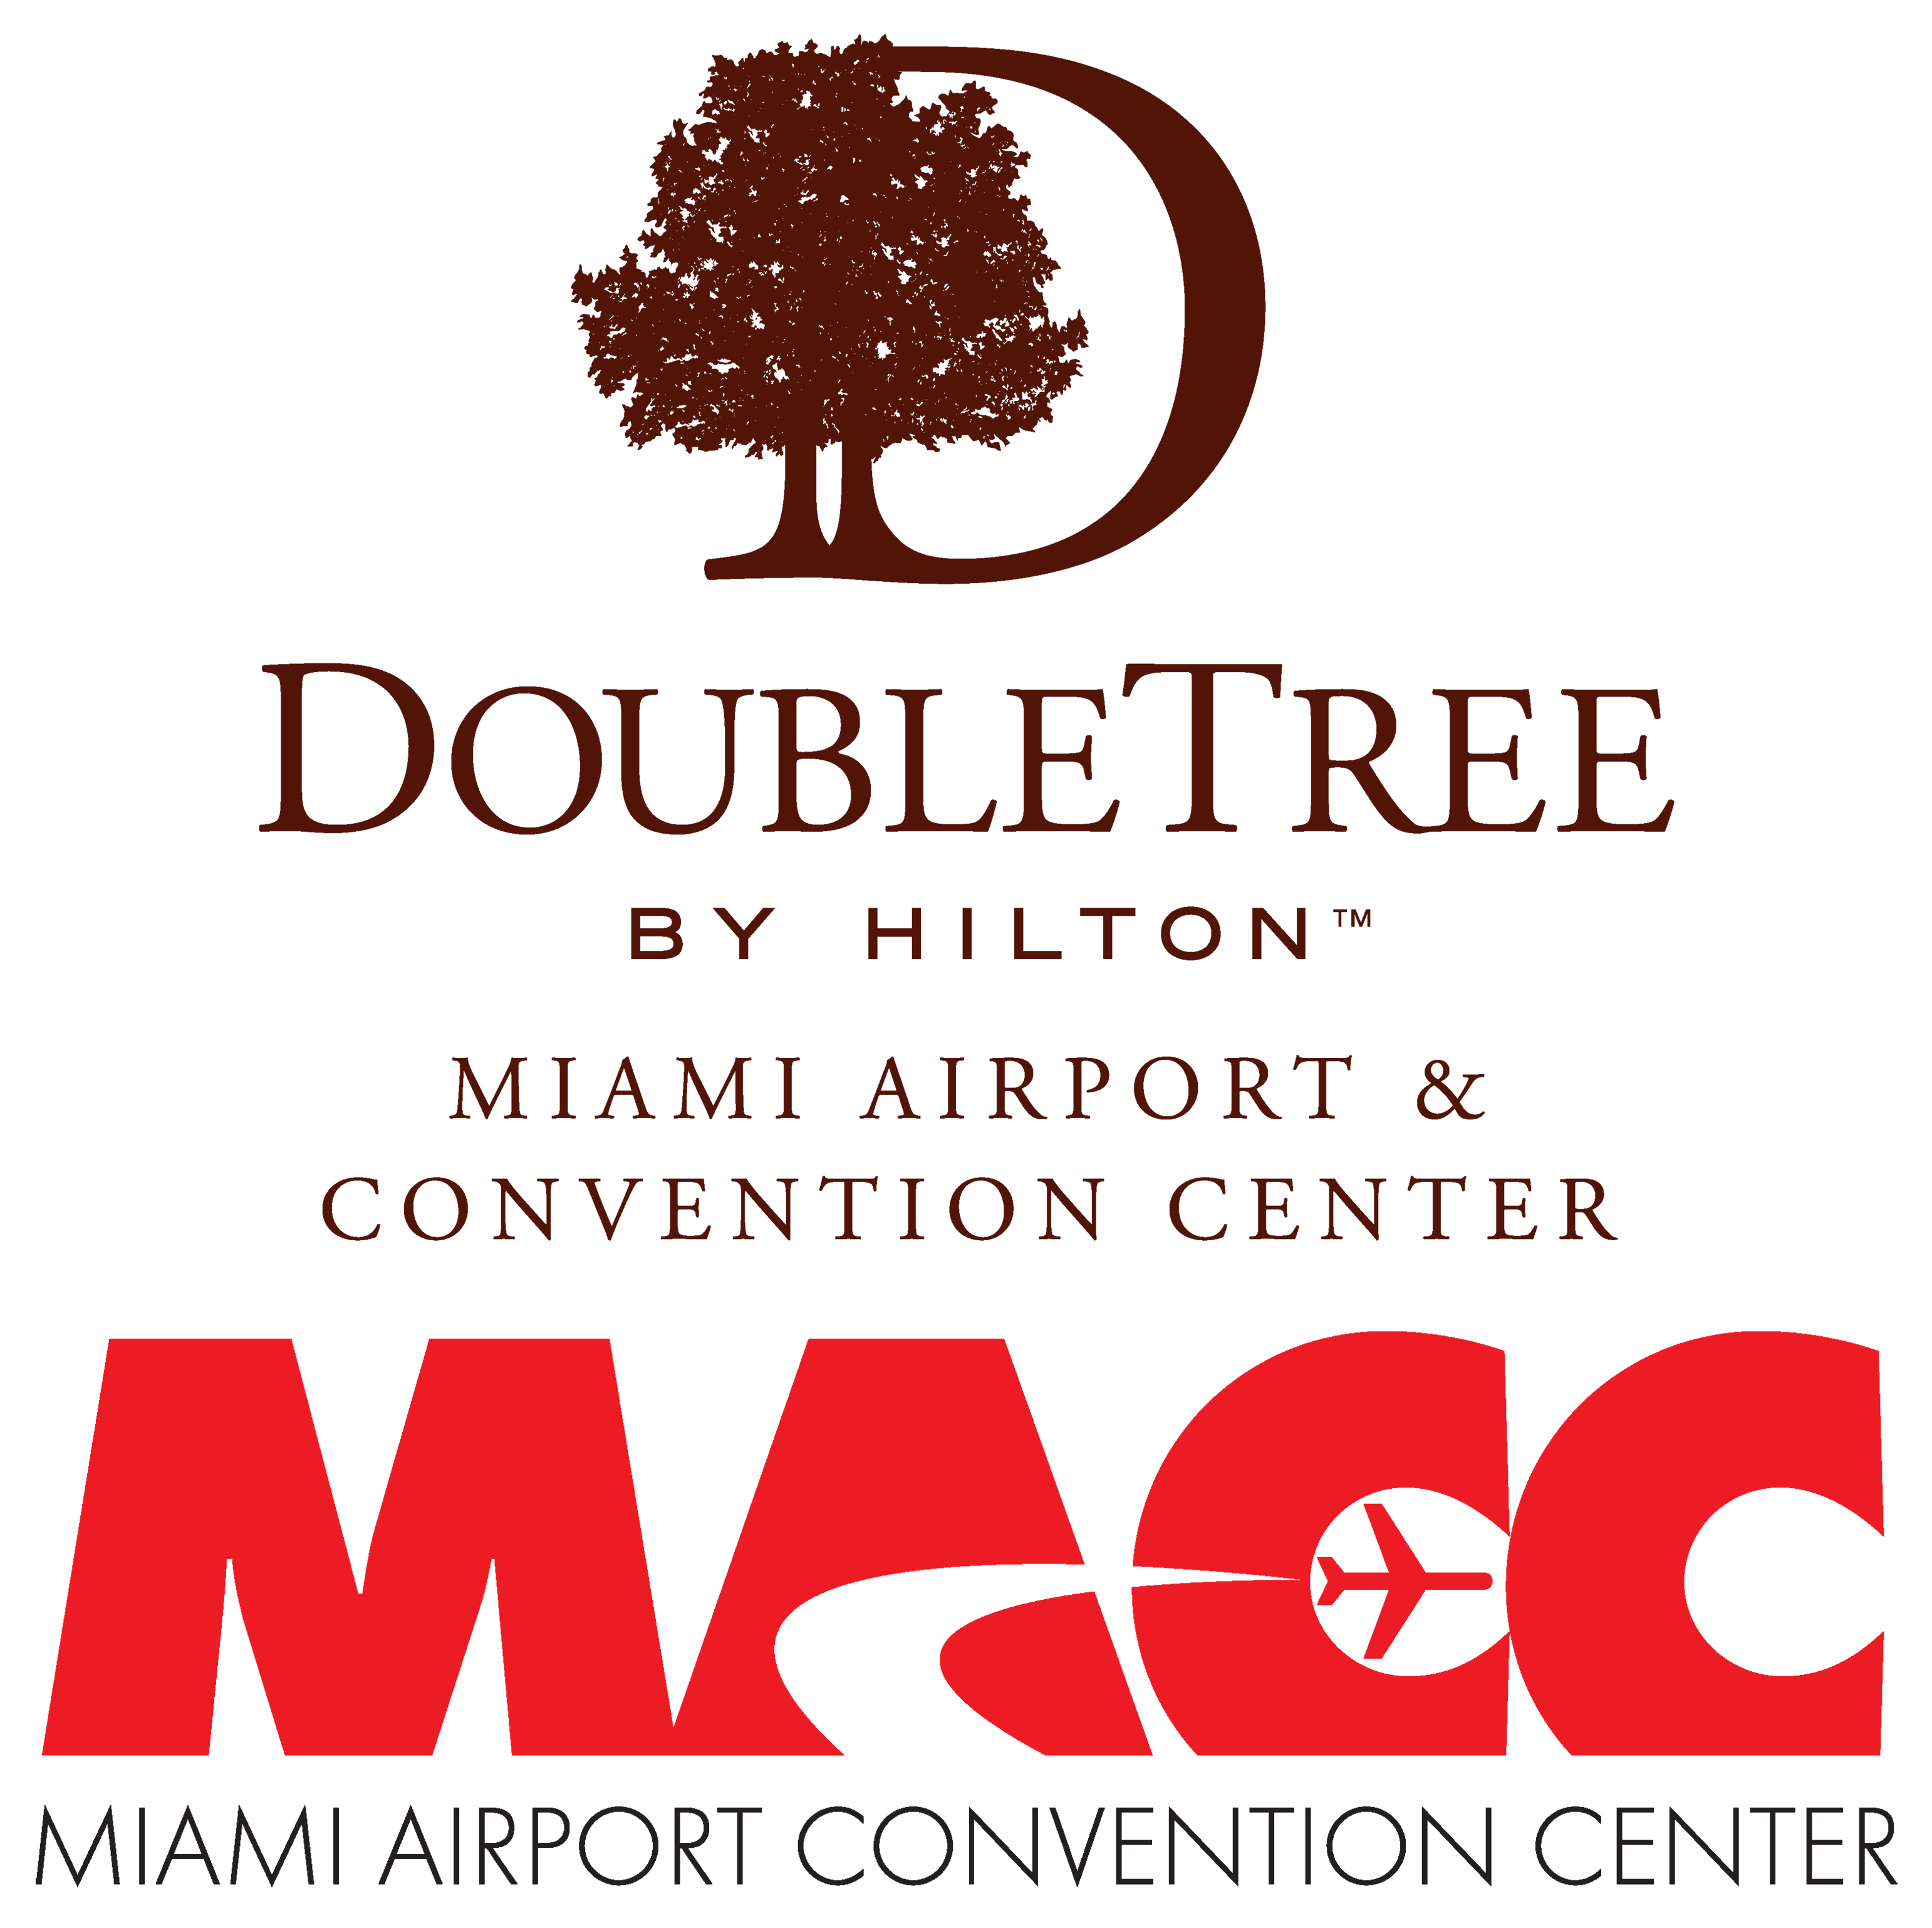 Doubletree by Hilton Miami Airport Convention Center